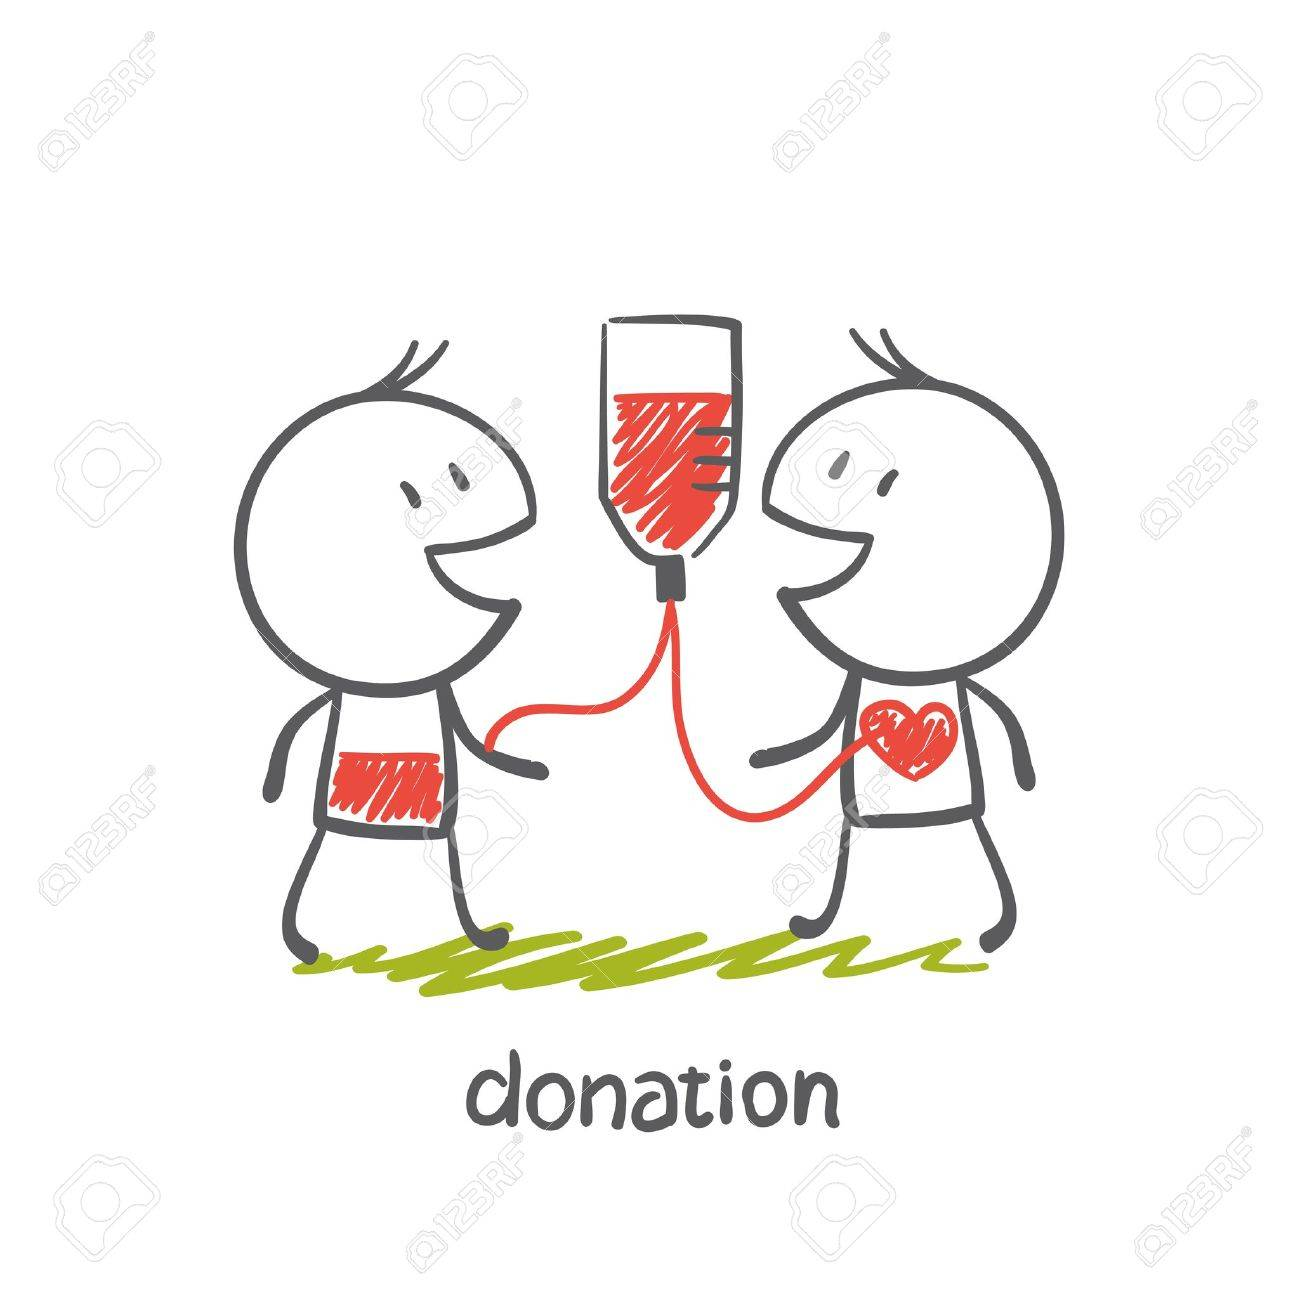 persons engaged in the donation illustration Standard-Bild - 36067801